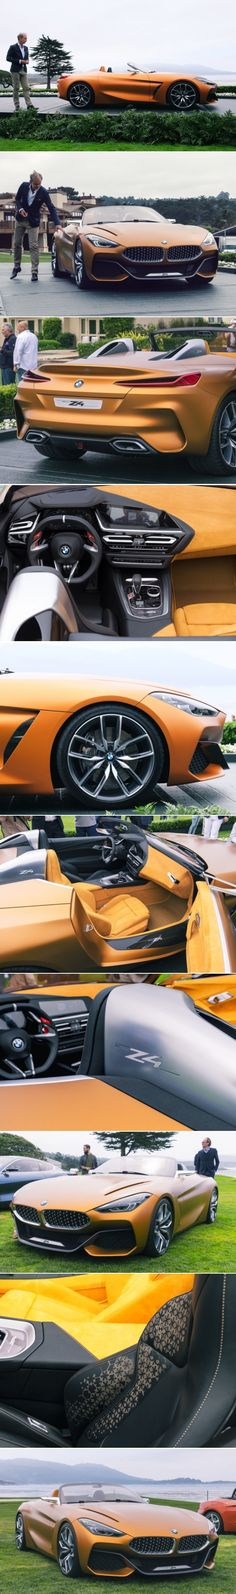 The German automaker unveils a new roadster concept at the 2017 Pebble Beach Concours d'Elegance exhibiting more muscle and movement. Bmw Z4 Roadster, Bmw Concept, Pebble Beach Concours, Shakespeare, Rolls, Game, Board, Vehicles, Cars